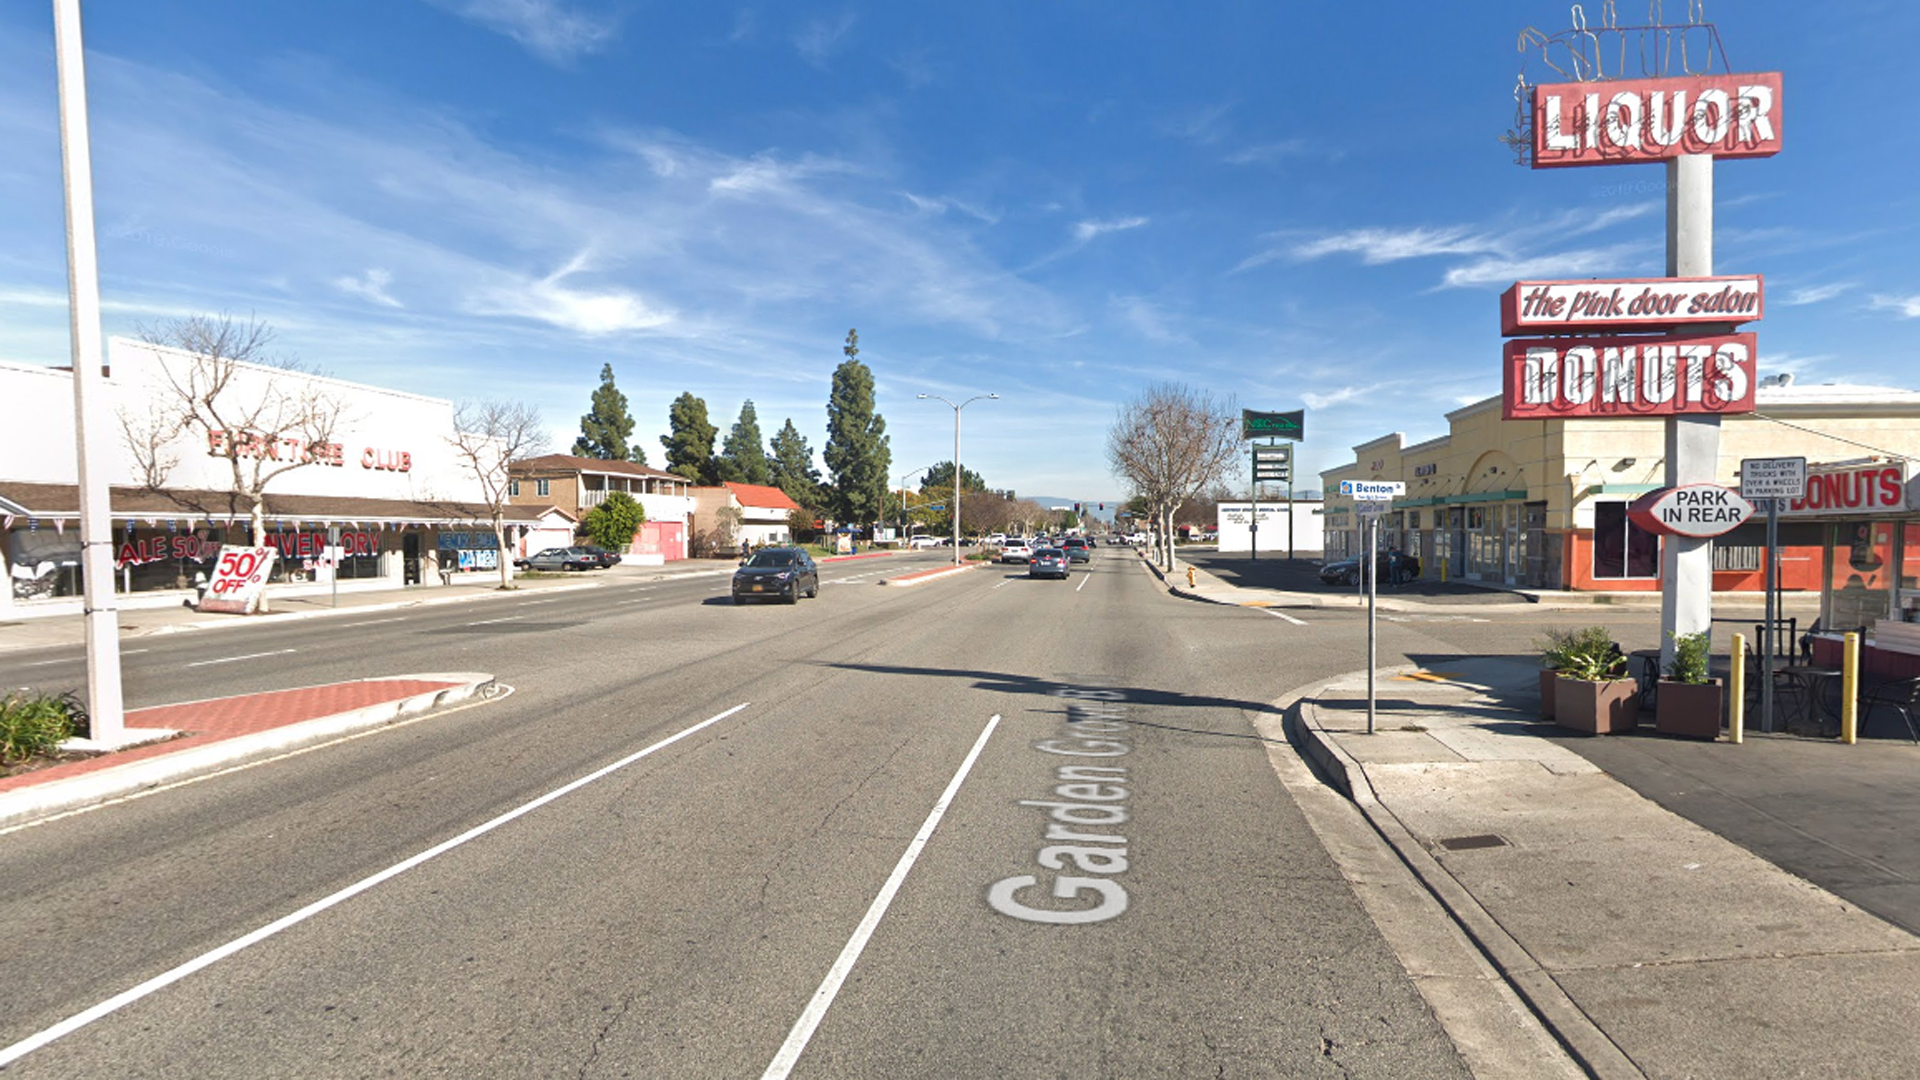 The intersection of Garden Grove Boulevard and Benton Street in Garden Grove, as viewed in a Google Street View image.